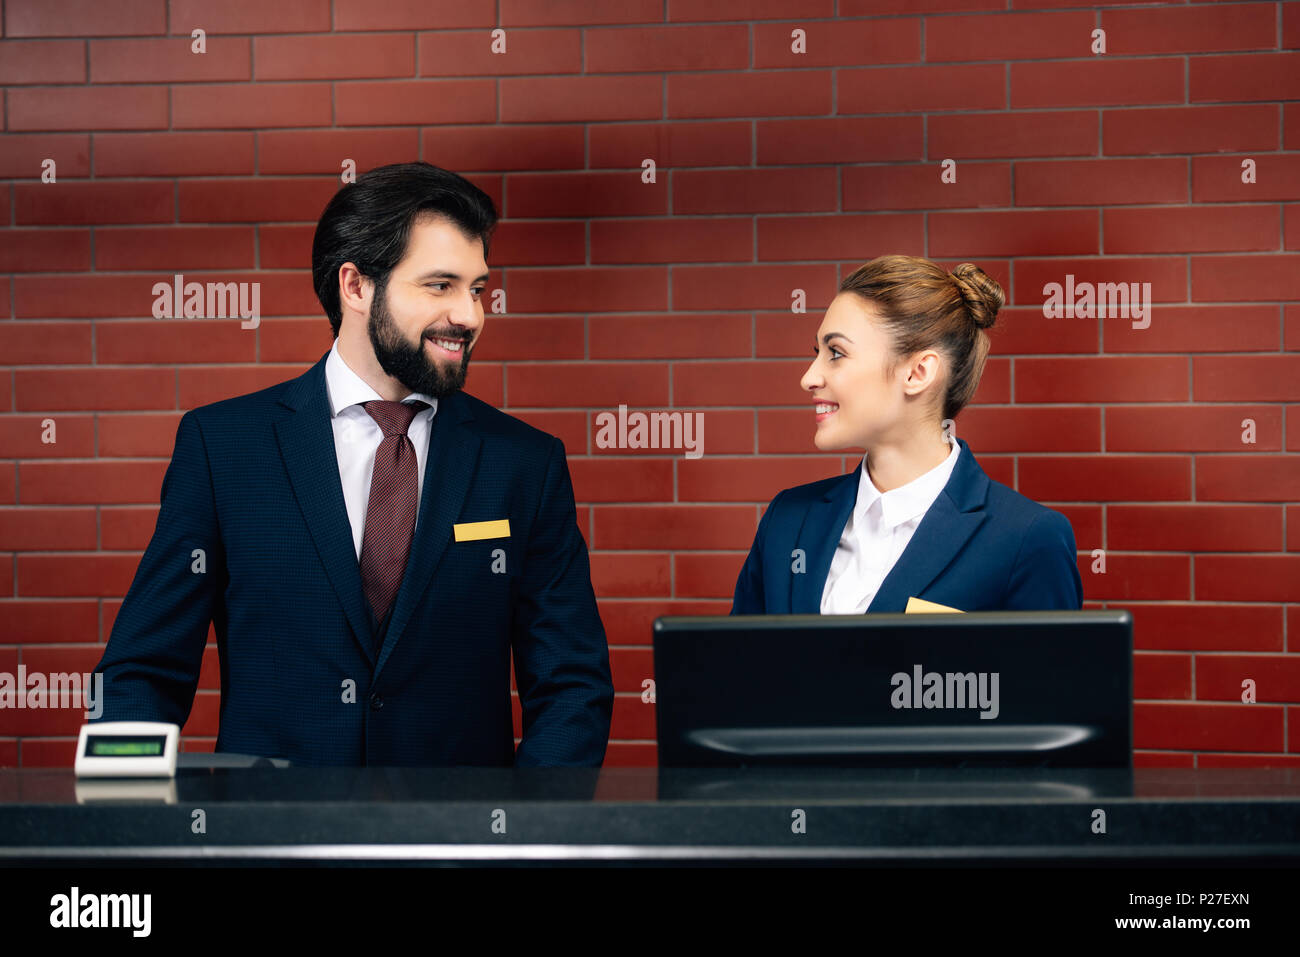 hotel receptionists looking at each other by counter - Stock Image